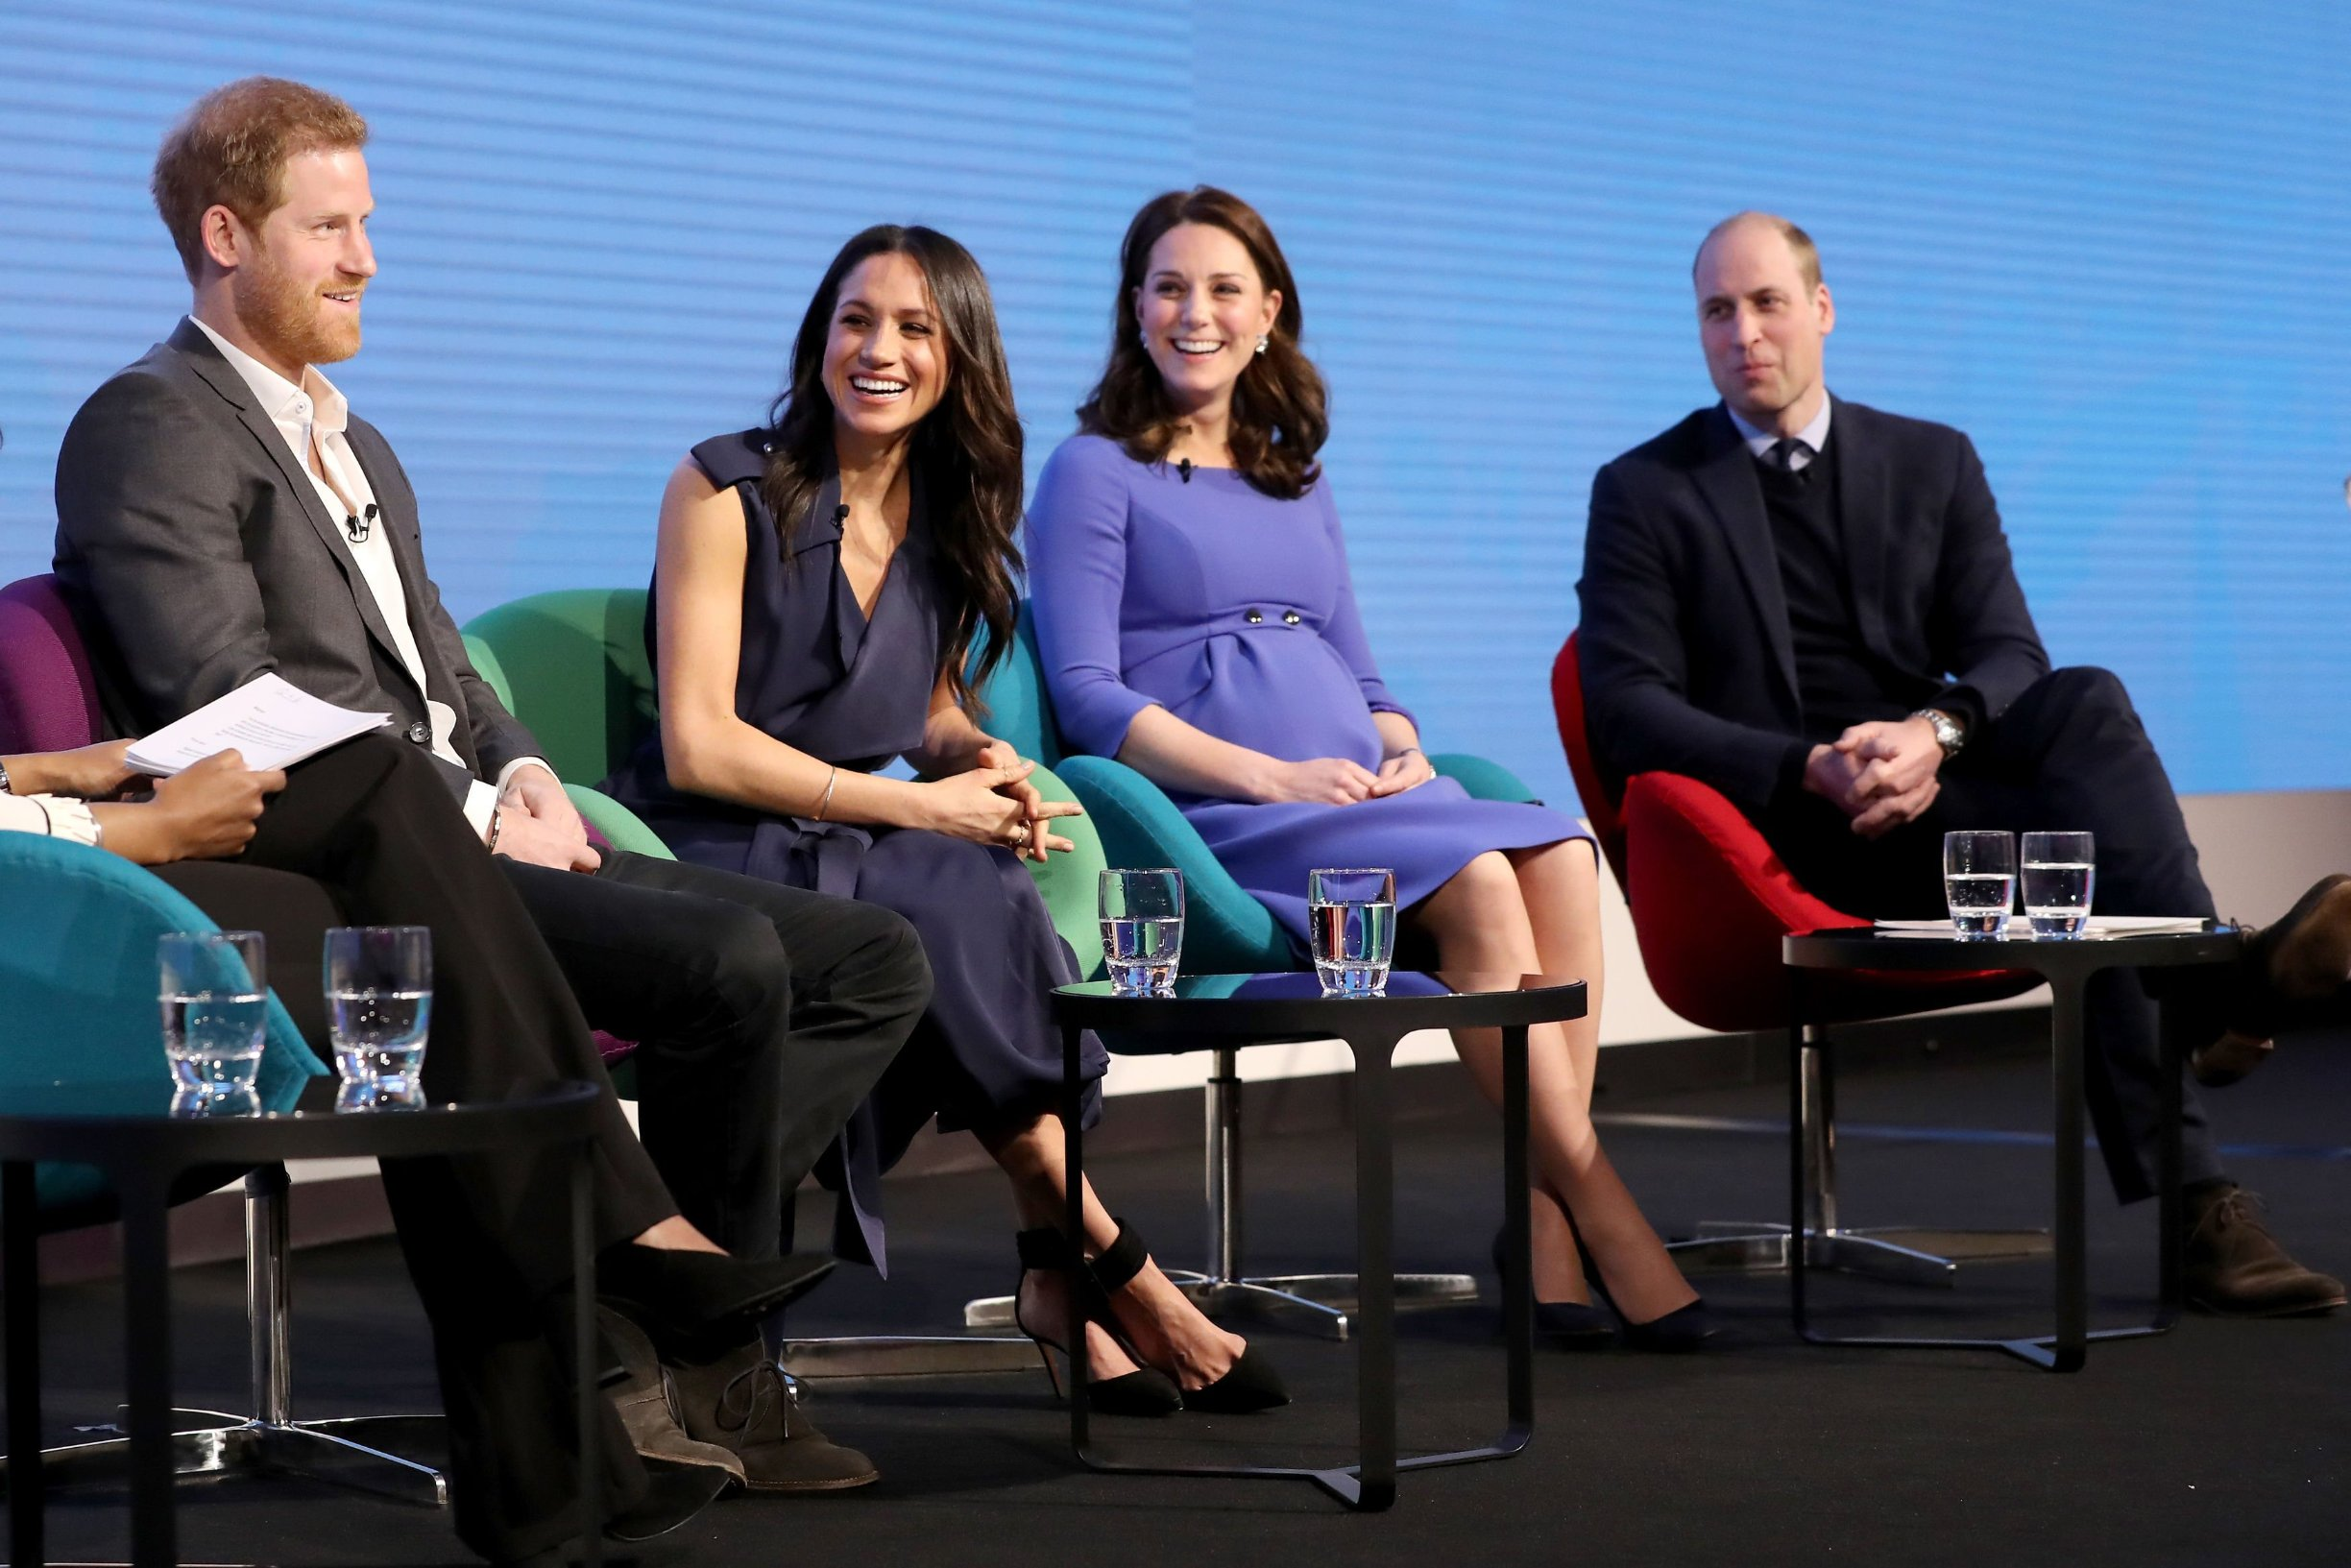 File photo dated 28/02/18 of (left to right) Prince Harry, Meghan Markle and the Duchess and Duke of Cambridge during the first Royal Foundation Forum in central London., Image: 404227169, License: Rights-managed, Restrictions: FILE PHOTO, Model Release: no, Credit line: Profimedia, Press Association